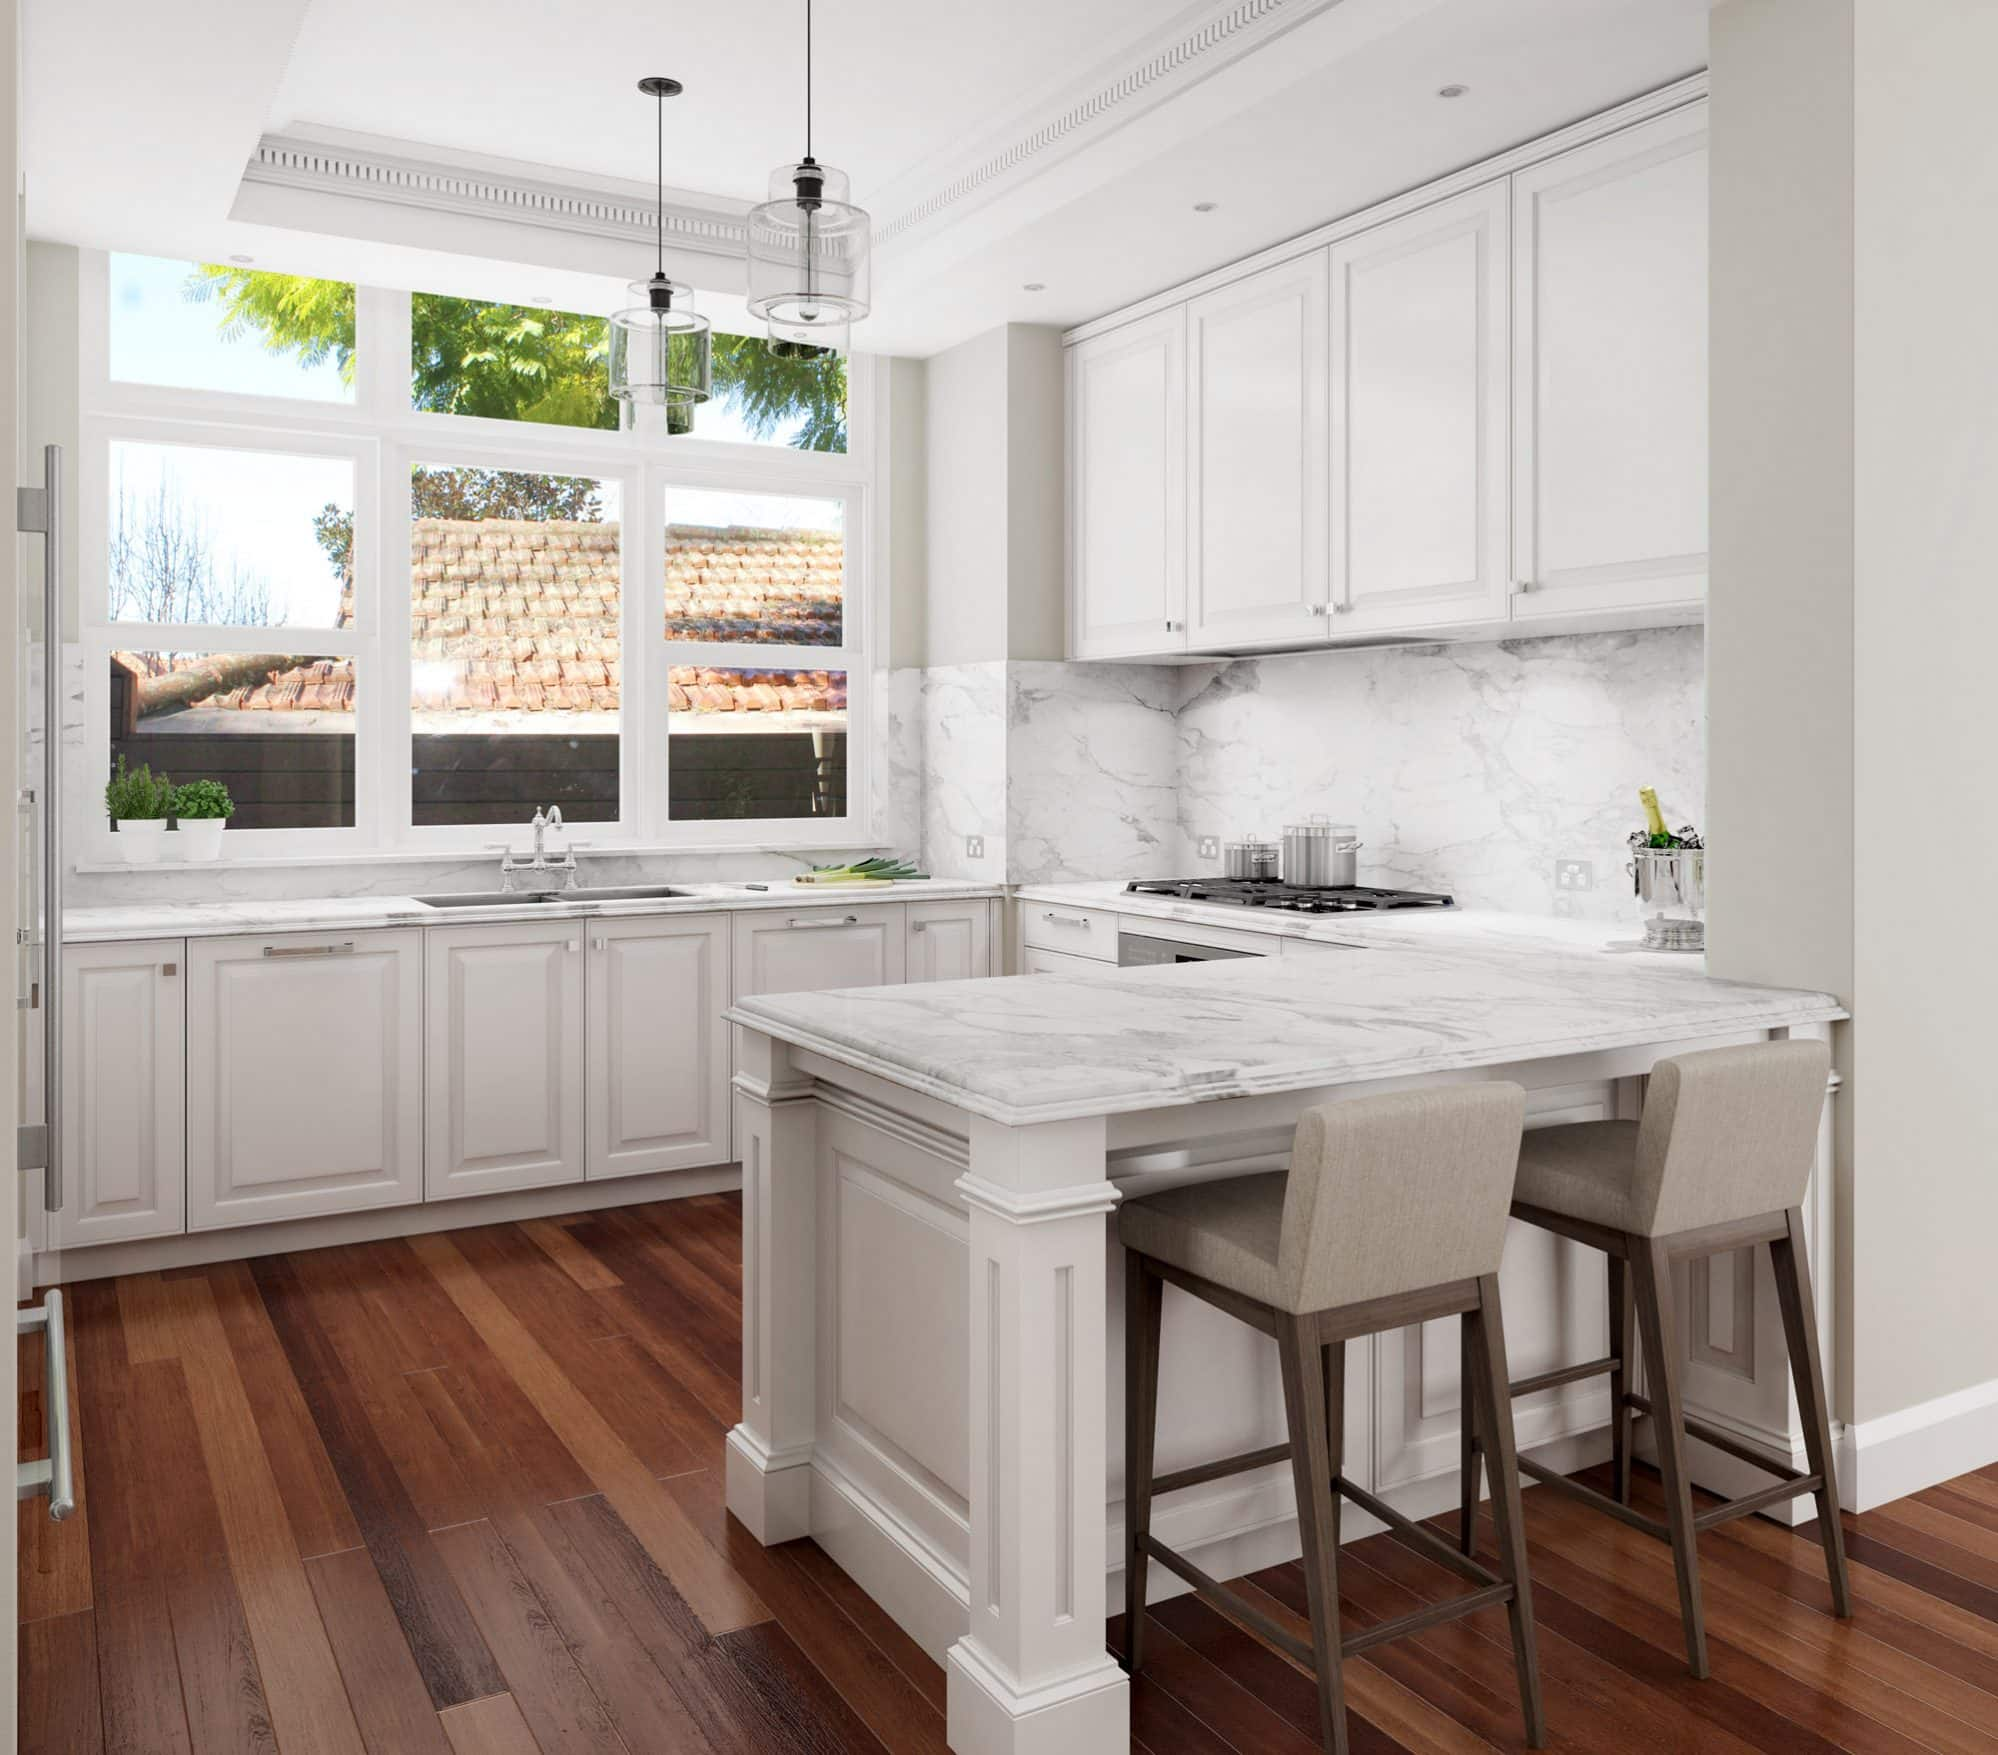 Designs Kitchen: Hamptons Style Kitchen Design